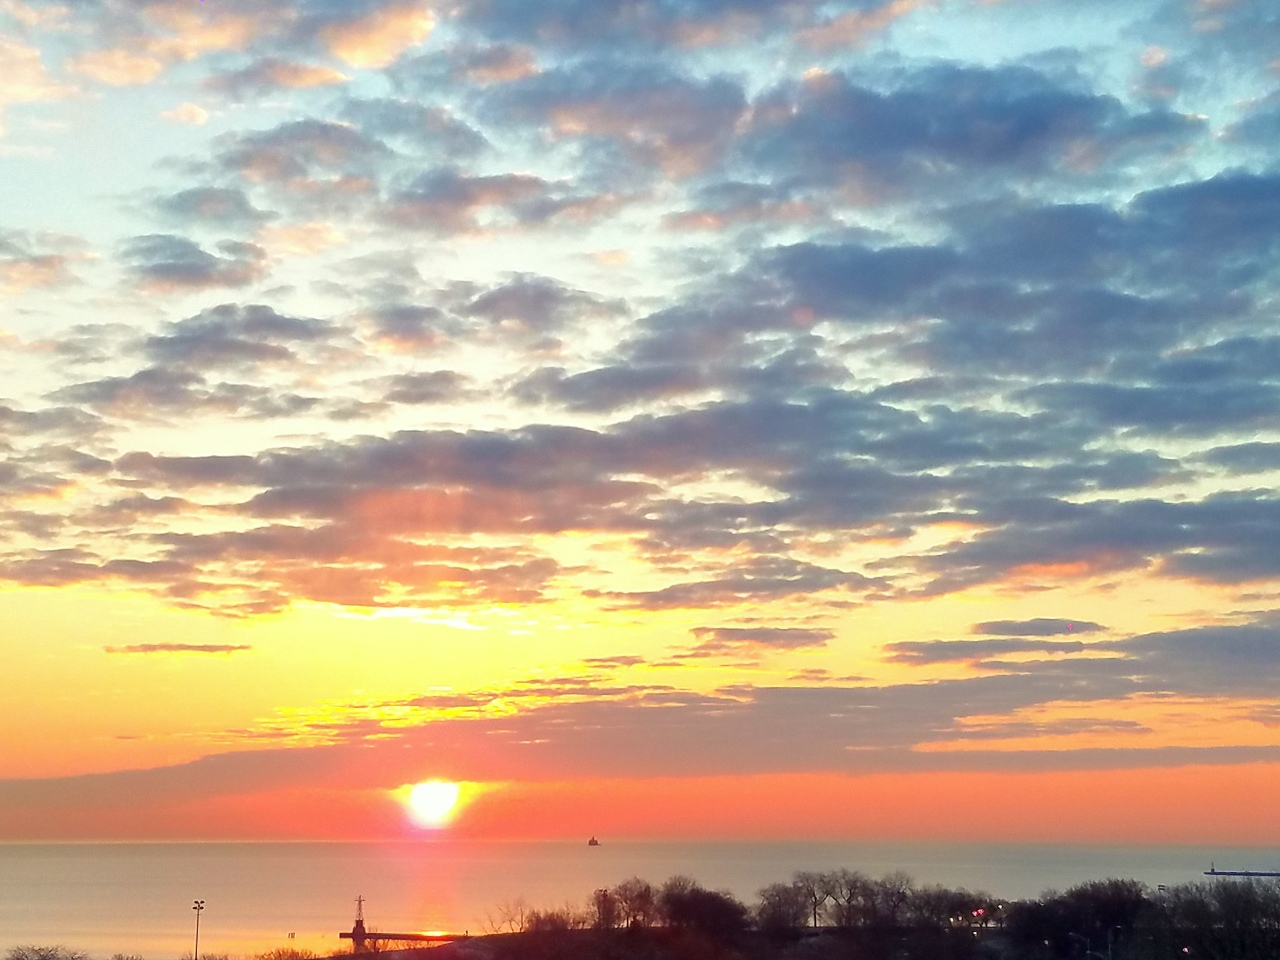 sunrise-lake-michigan-february-27-2017-3